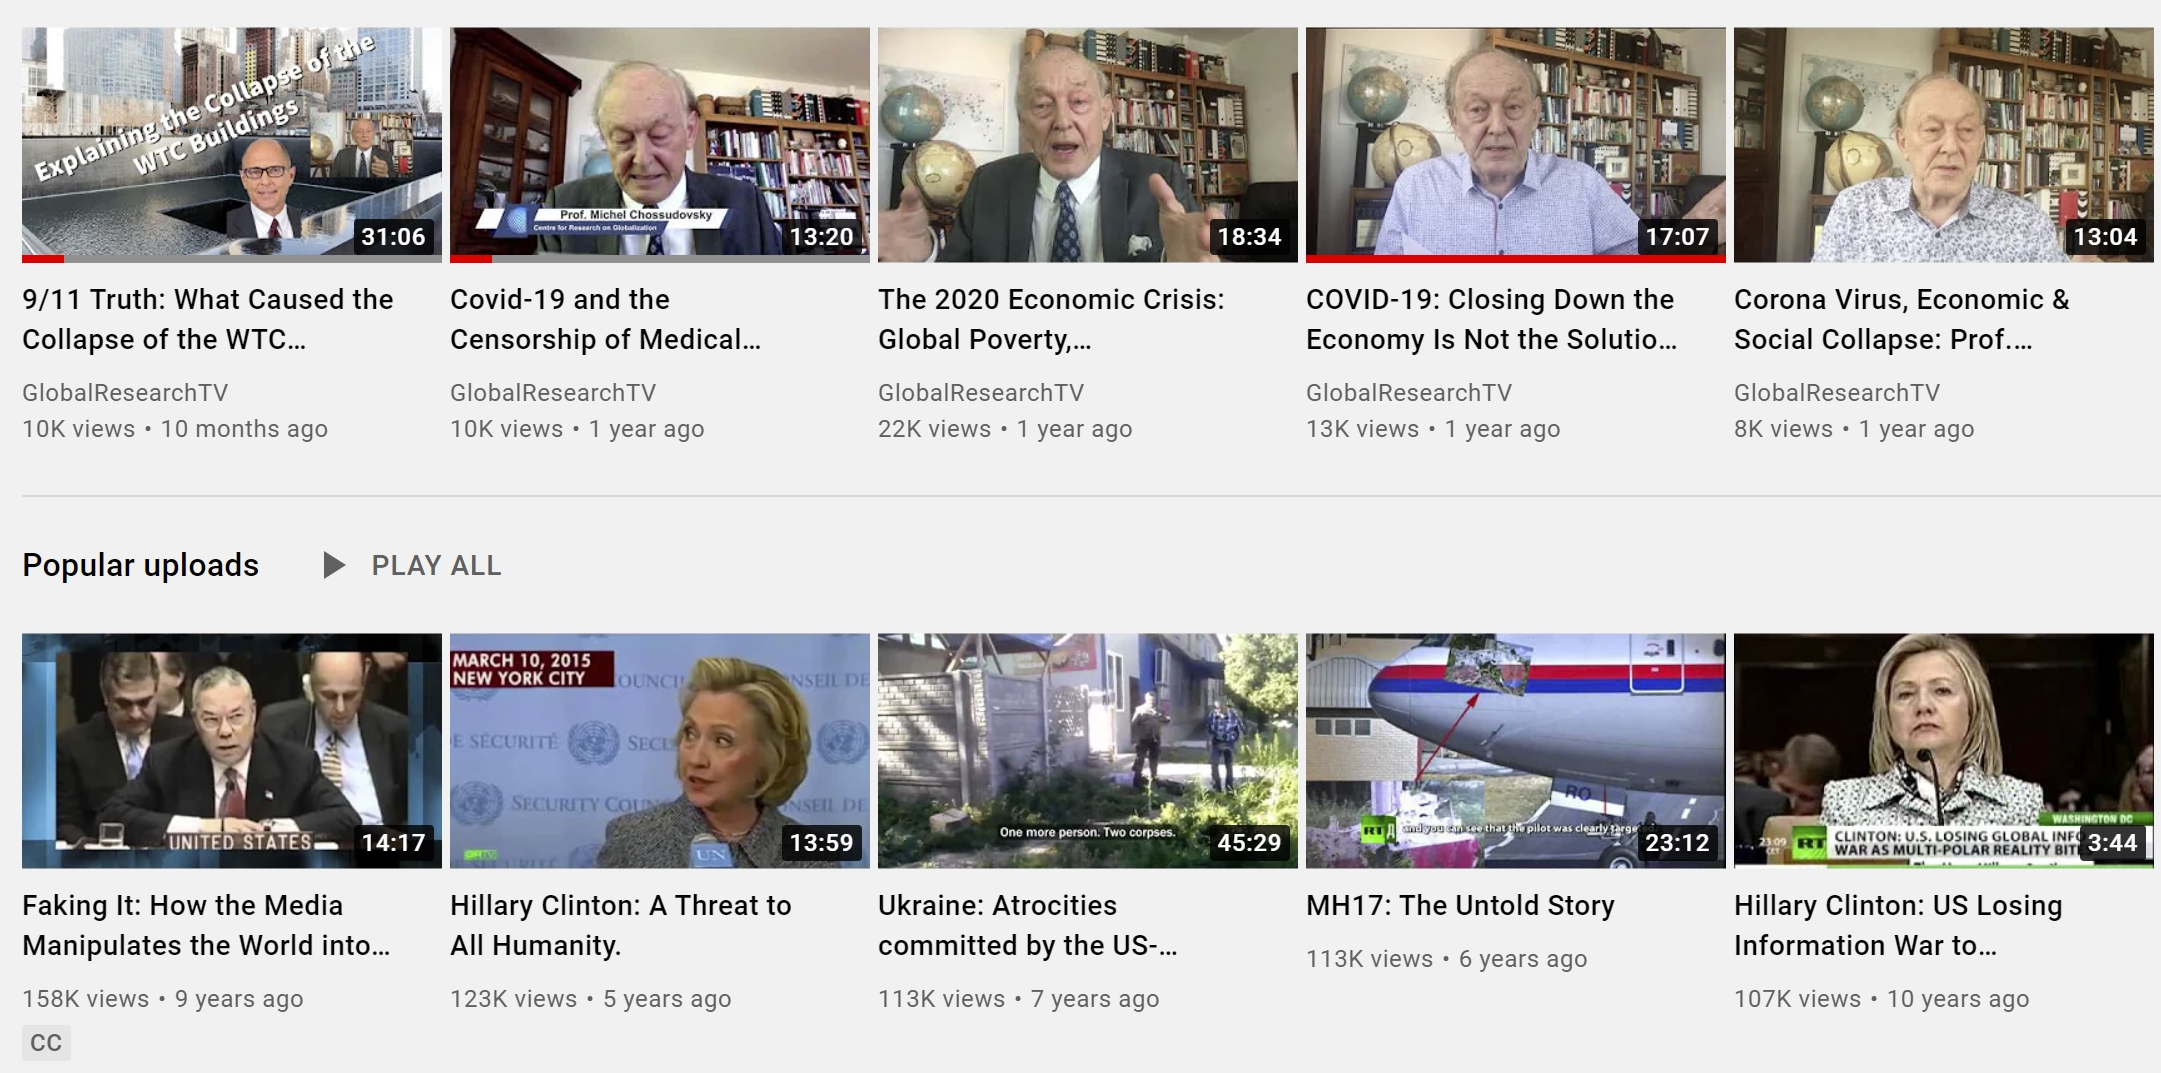 Examples of content on the Global Research YouTube page